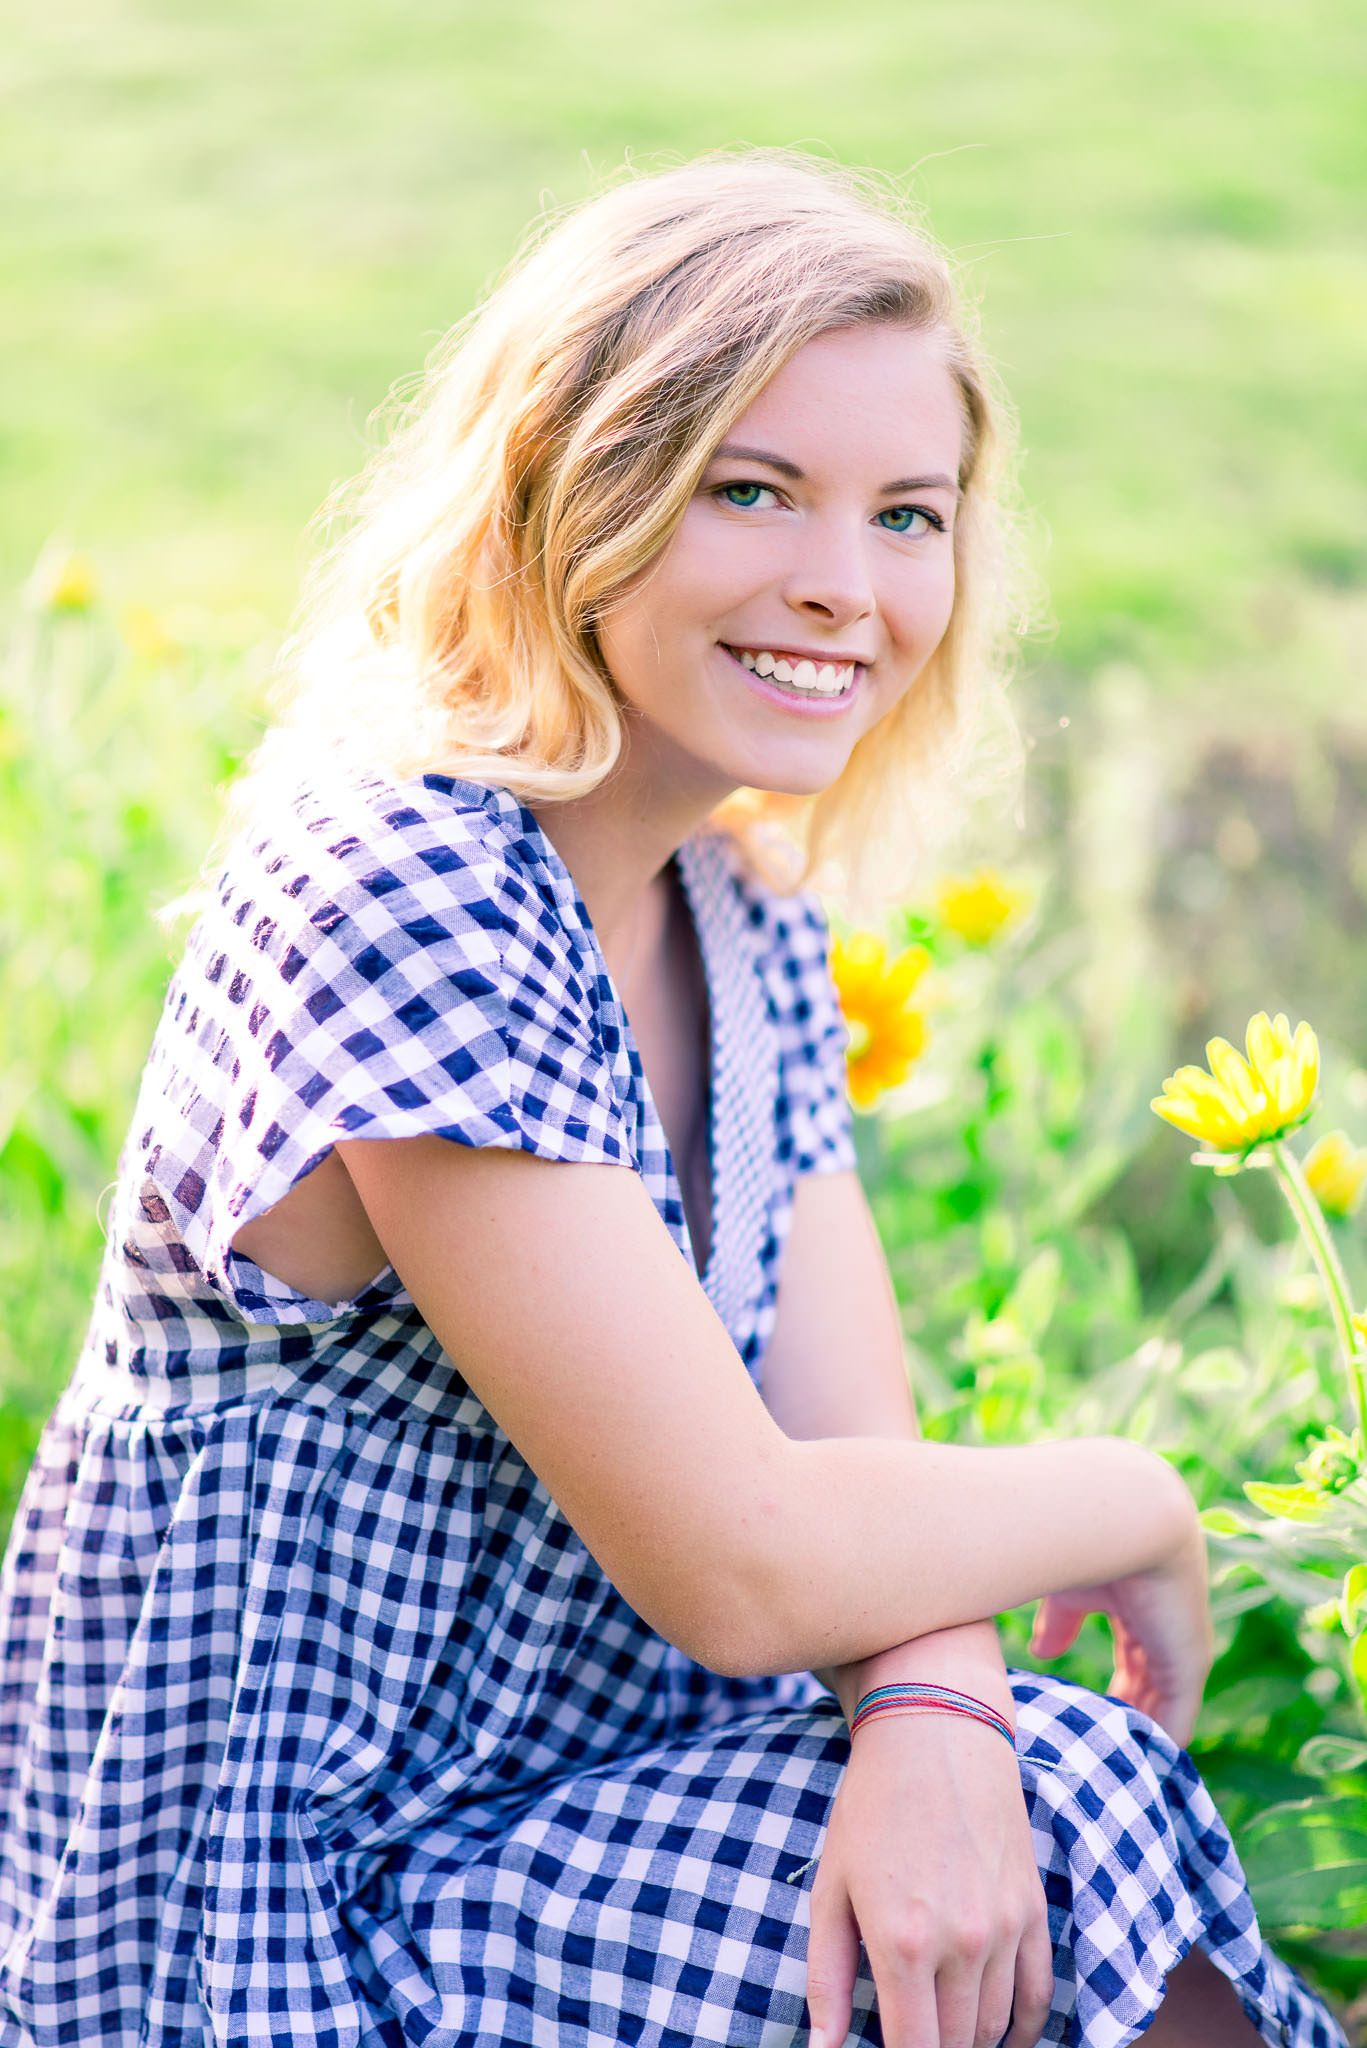 young blonde woman with blue eyes smiling and crouching in front of flowers in the summer